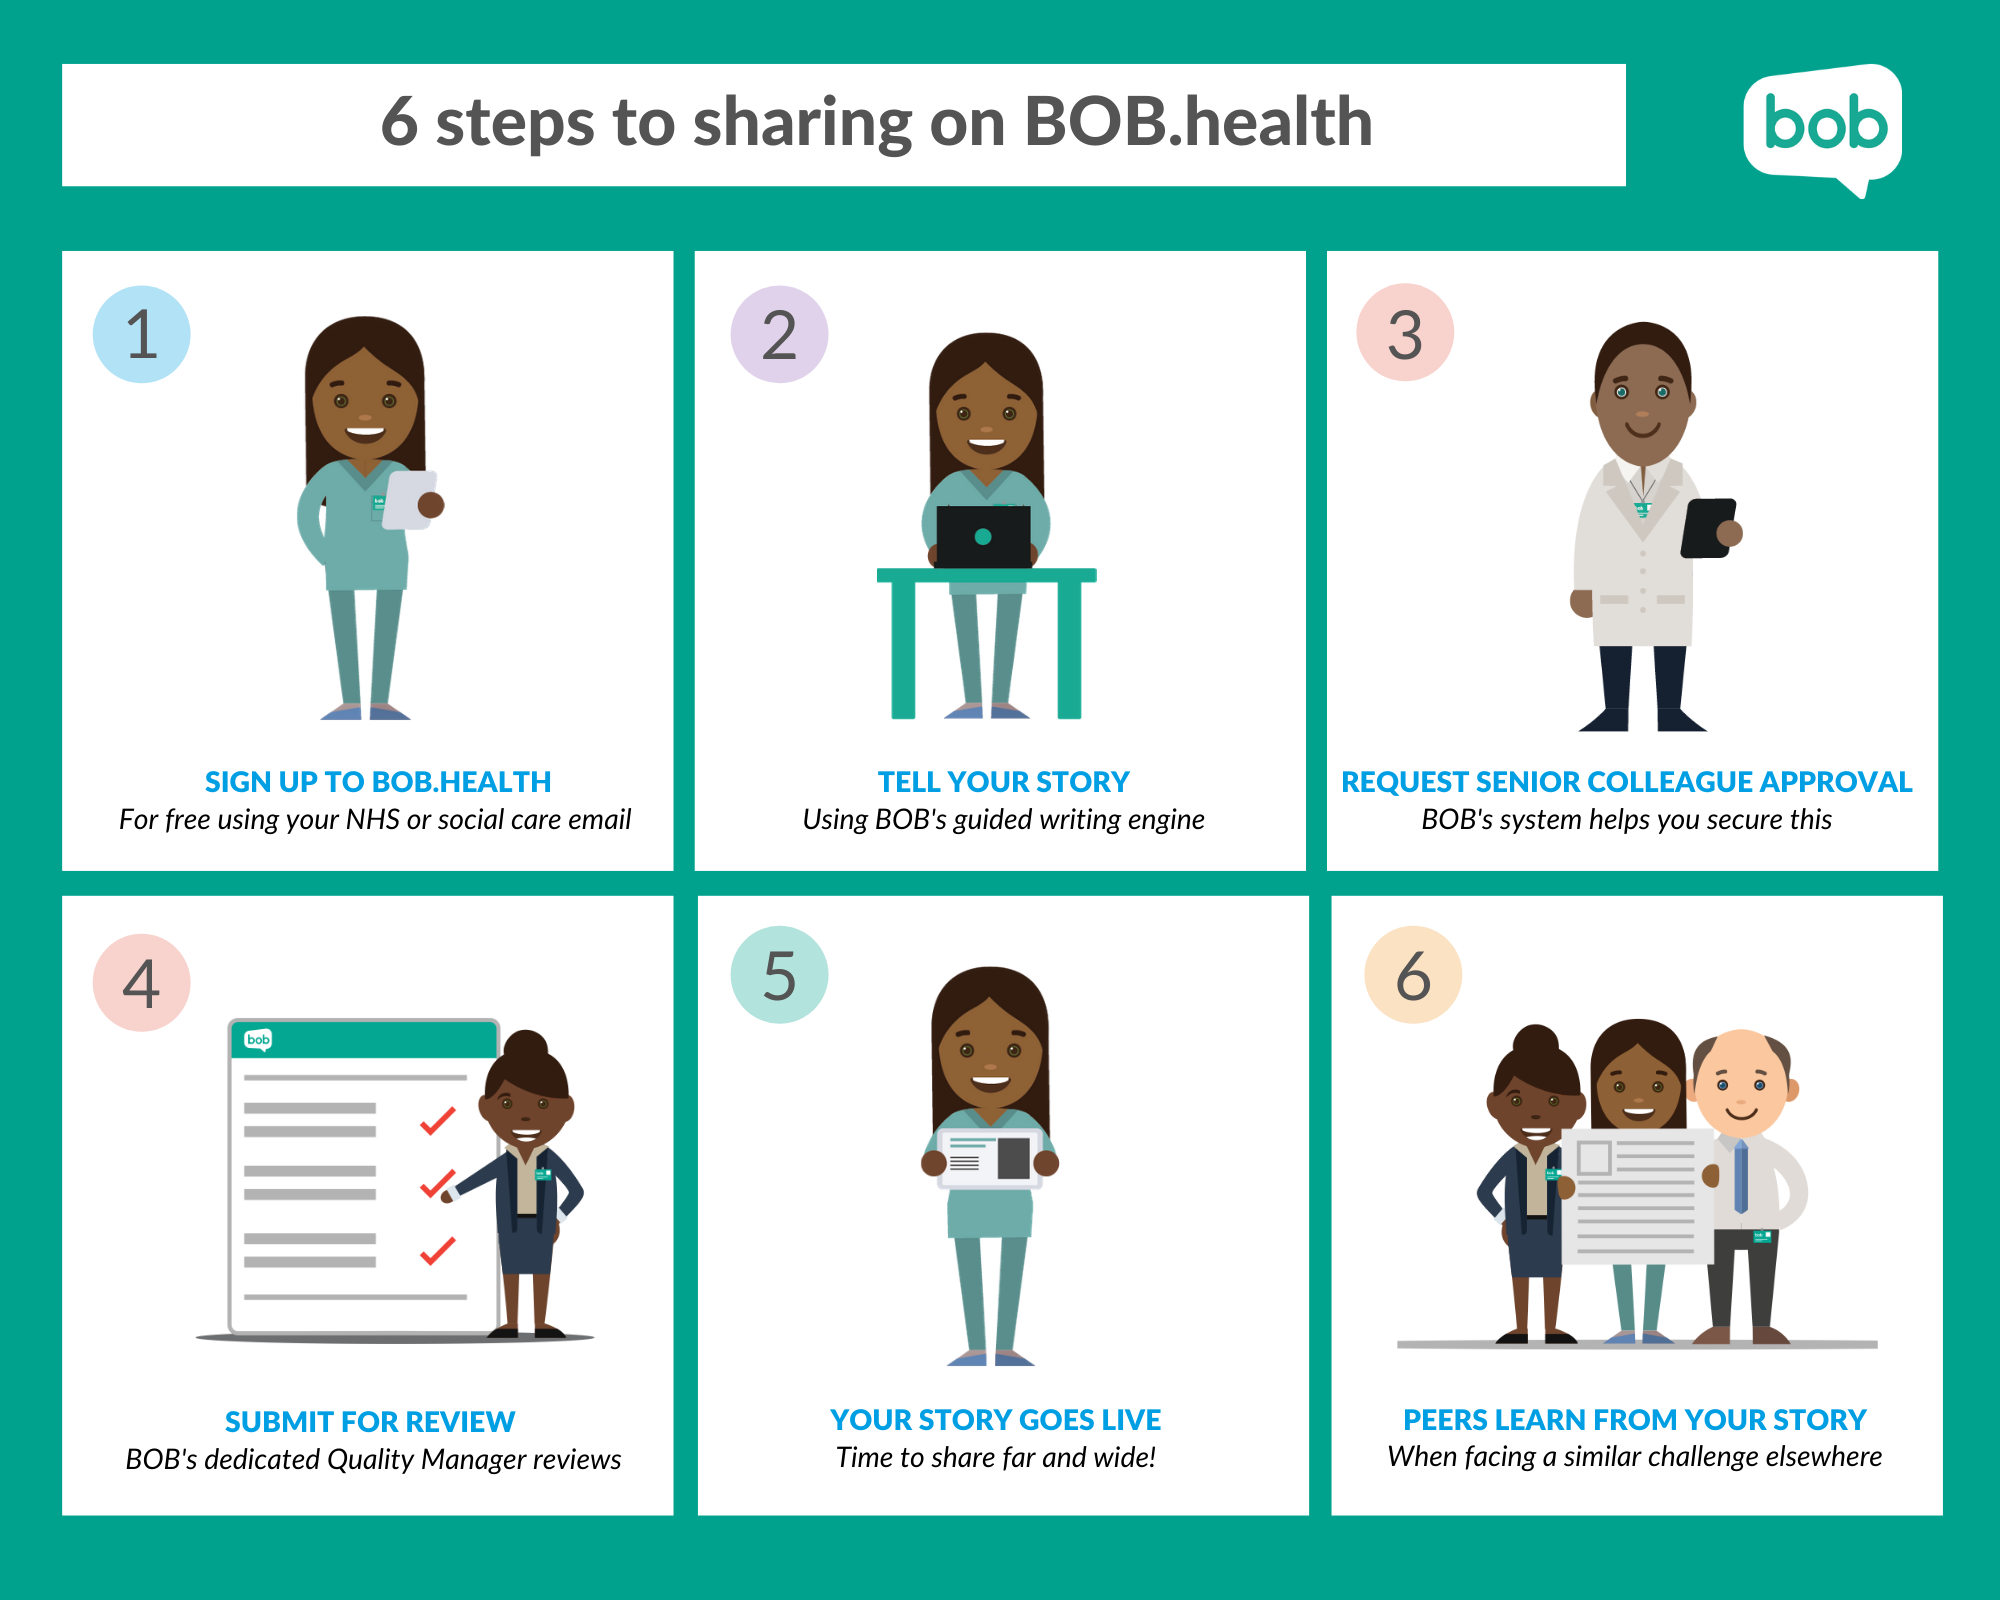 How do we ensure BOB.health is a safe and secure space to share?